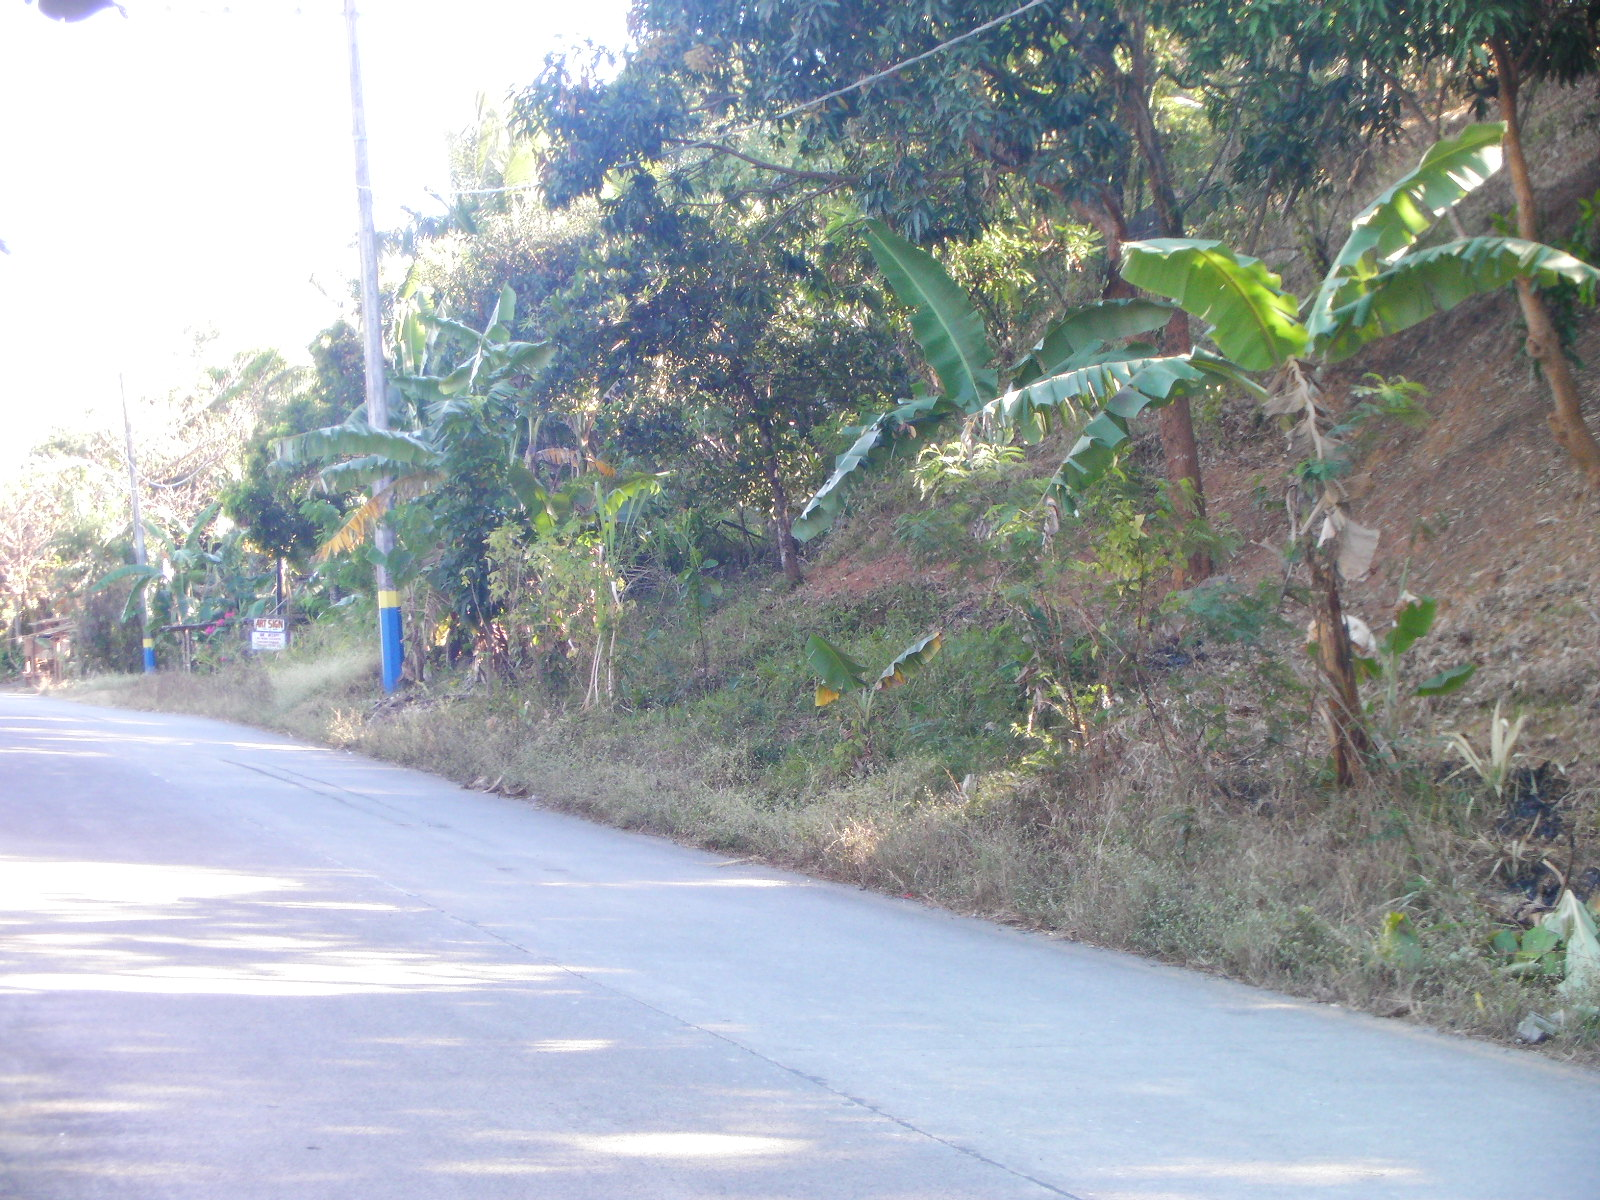 FOR SALE: Lot / Land / Farm Rizal > Other areas 2